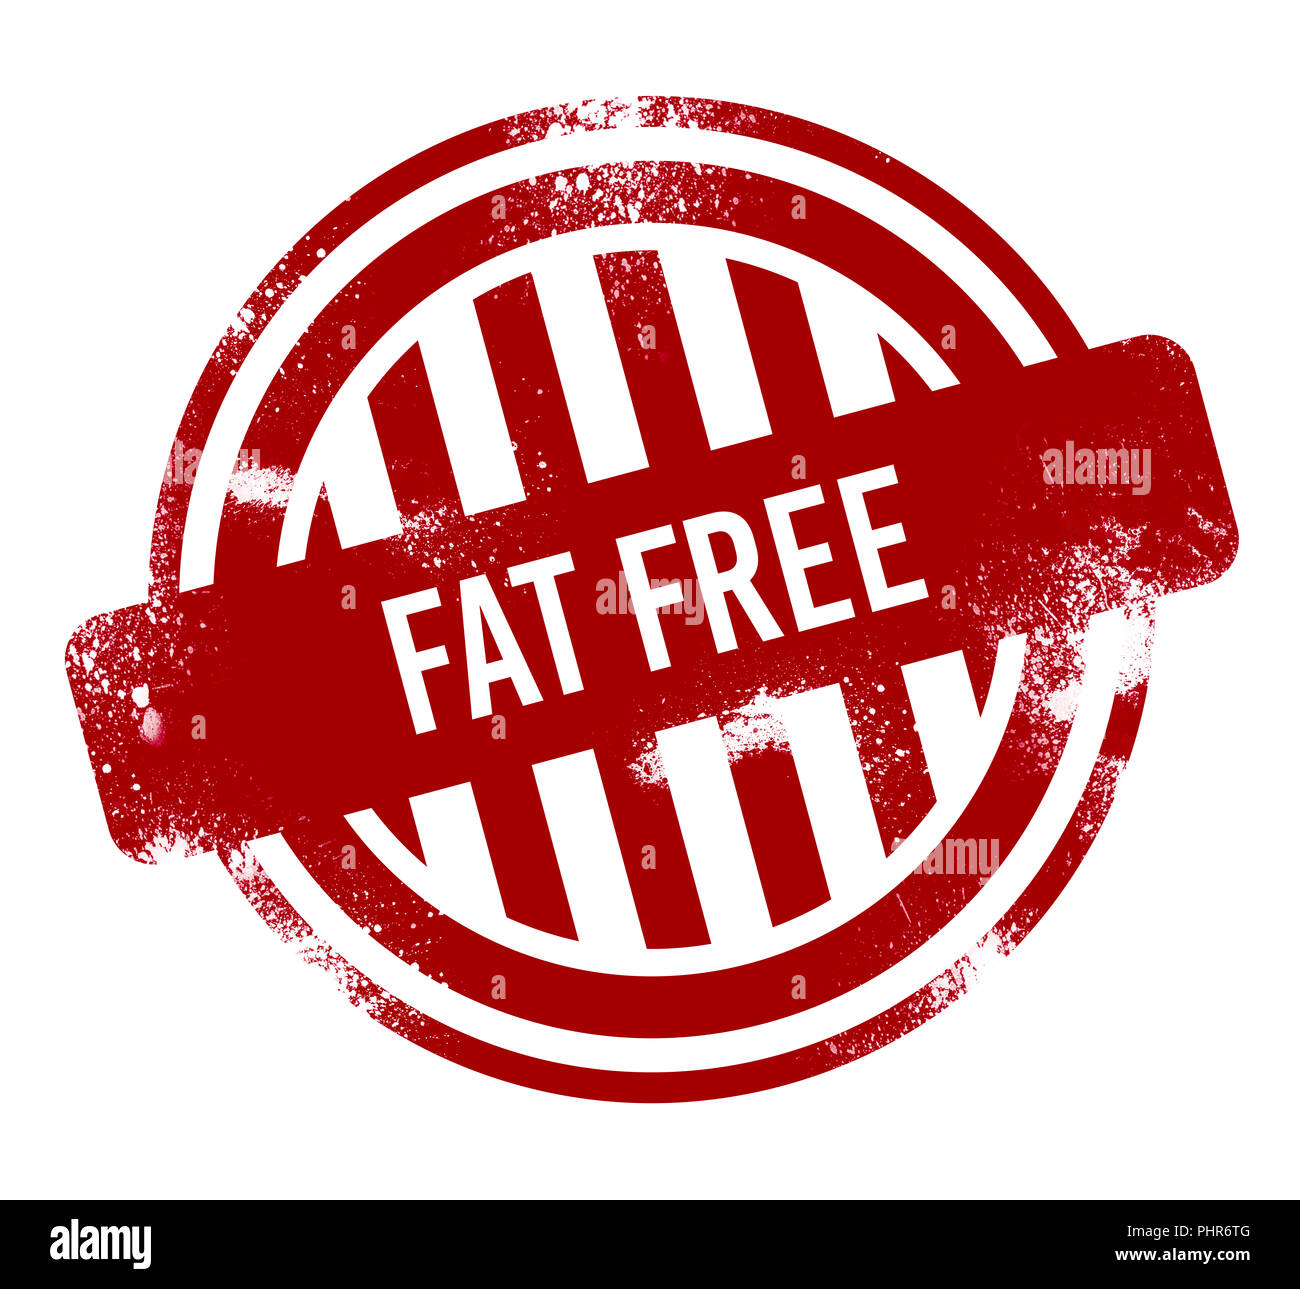 fat free - red grunge button, stamp Stock Photo